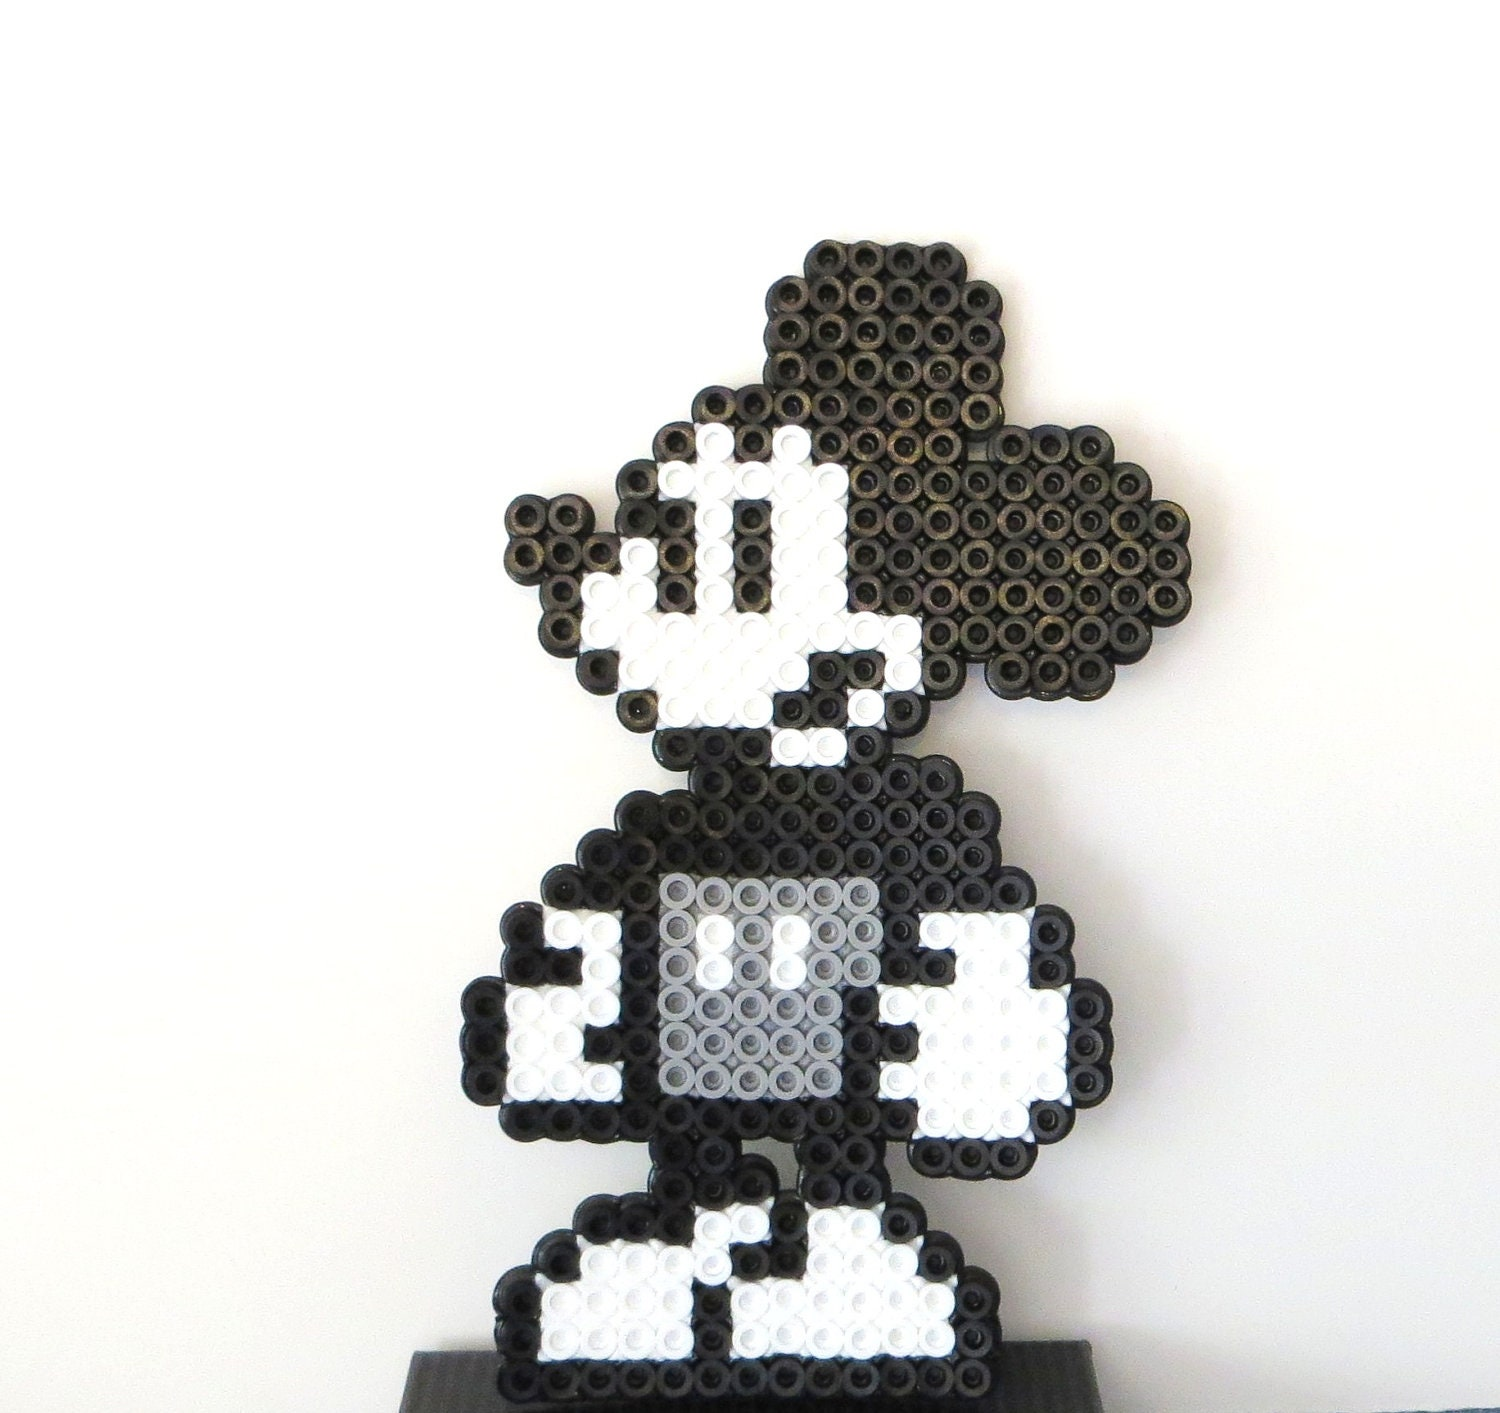 steamboat willie mickey pixel art created with perler beads. Black Bedroom Furniture Sets. Home Design Ideas